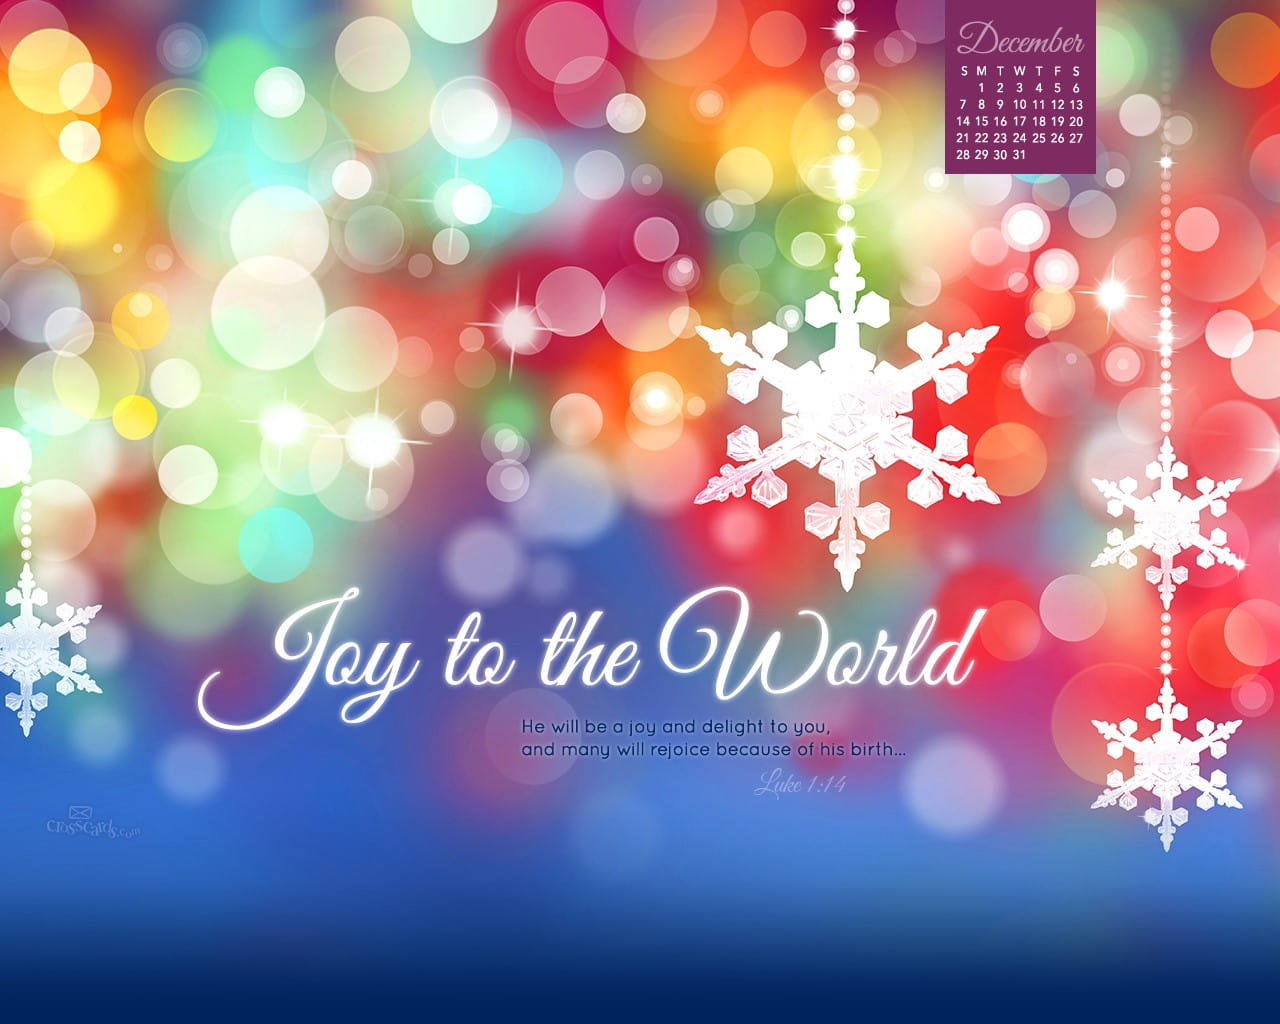 December 2014 joy to the world desktop calendar free for Holiday themed facebook cover photos